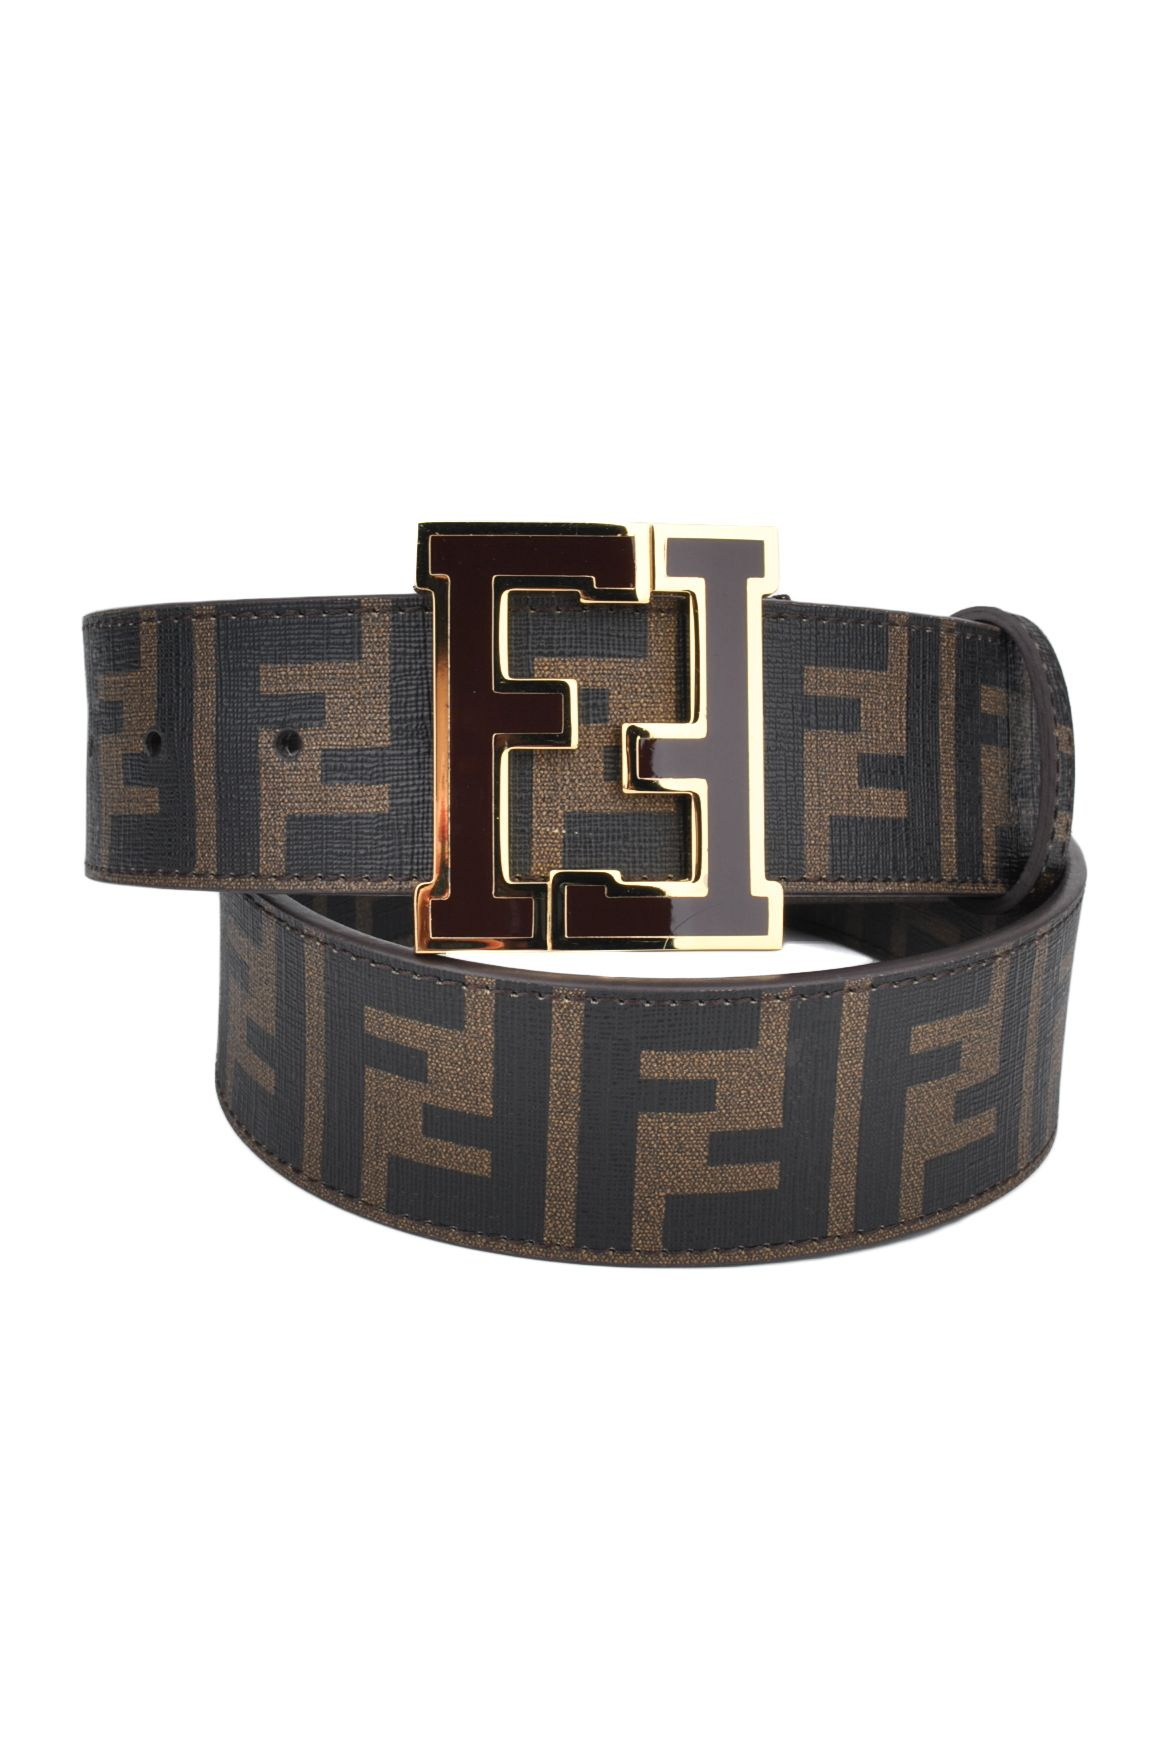 Fendi brown zucca college belt designer clothing discount Designer clothes discounted